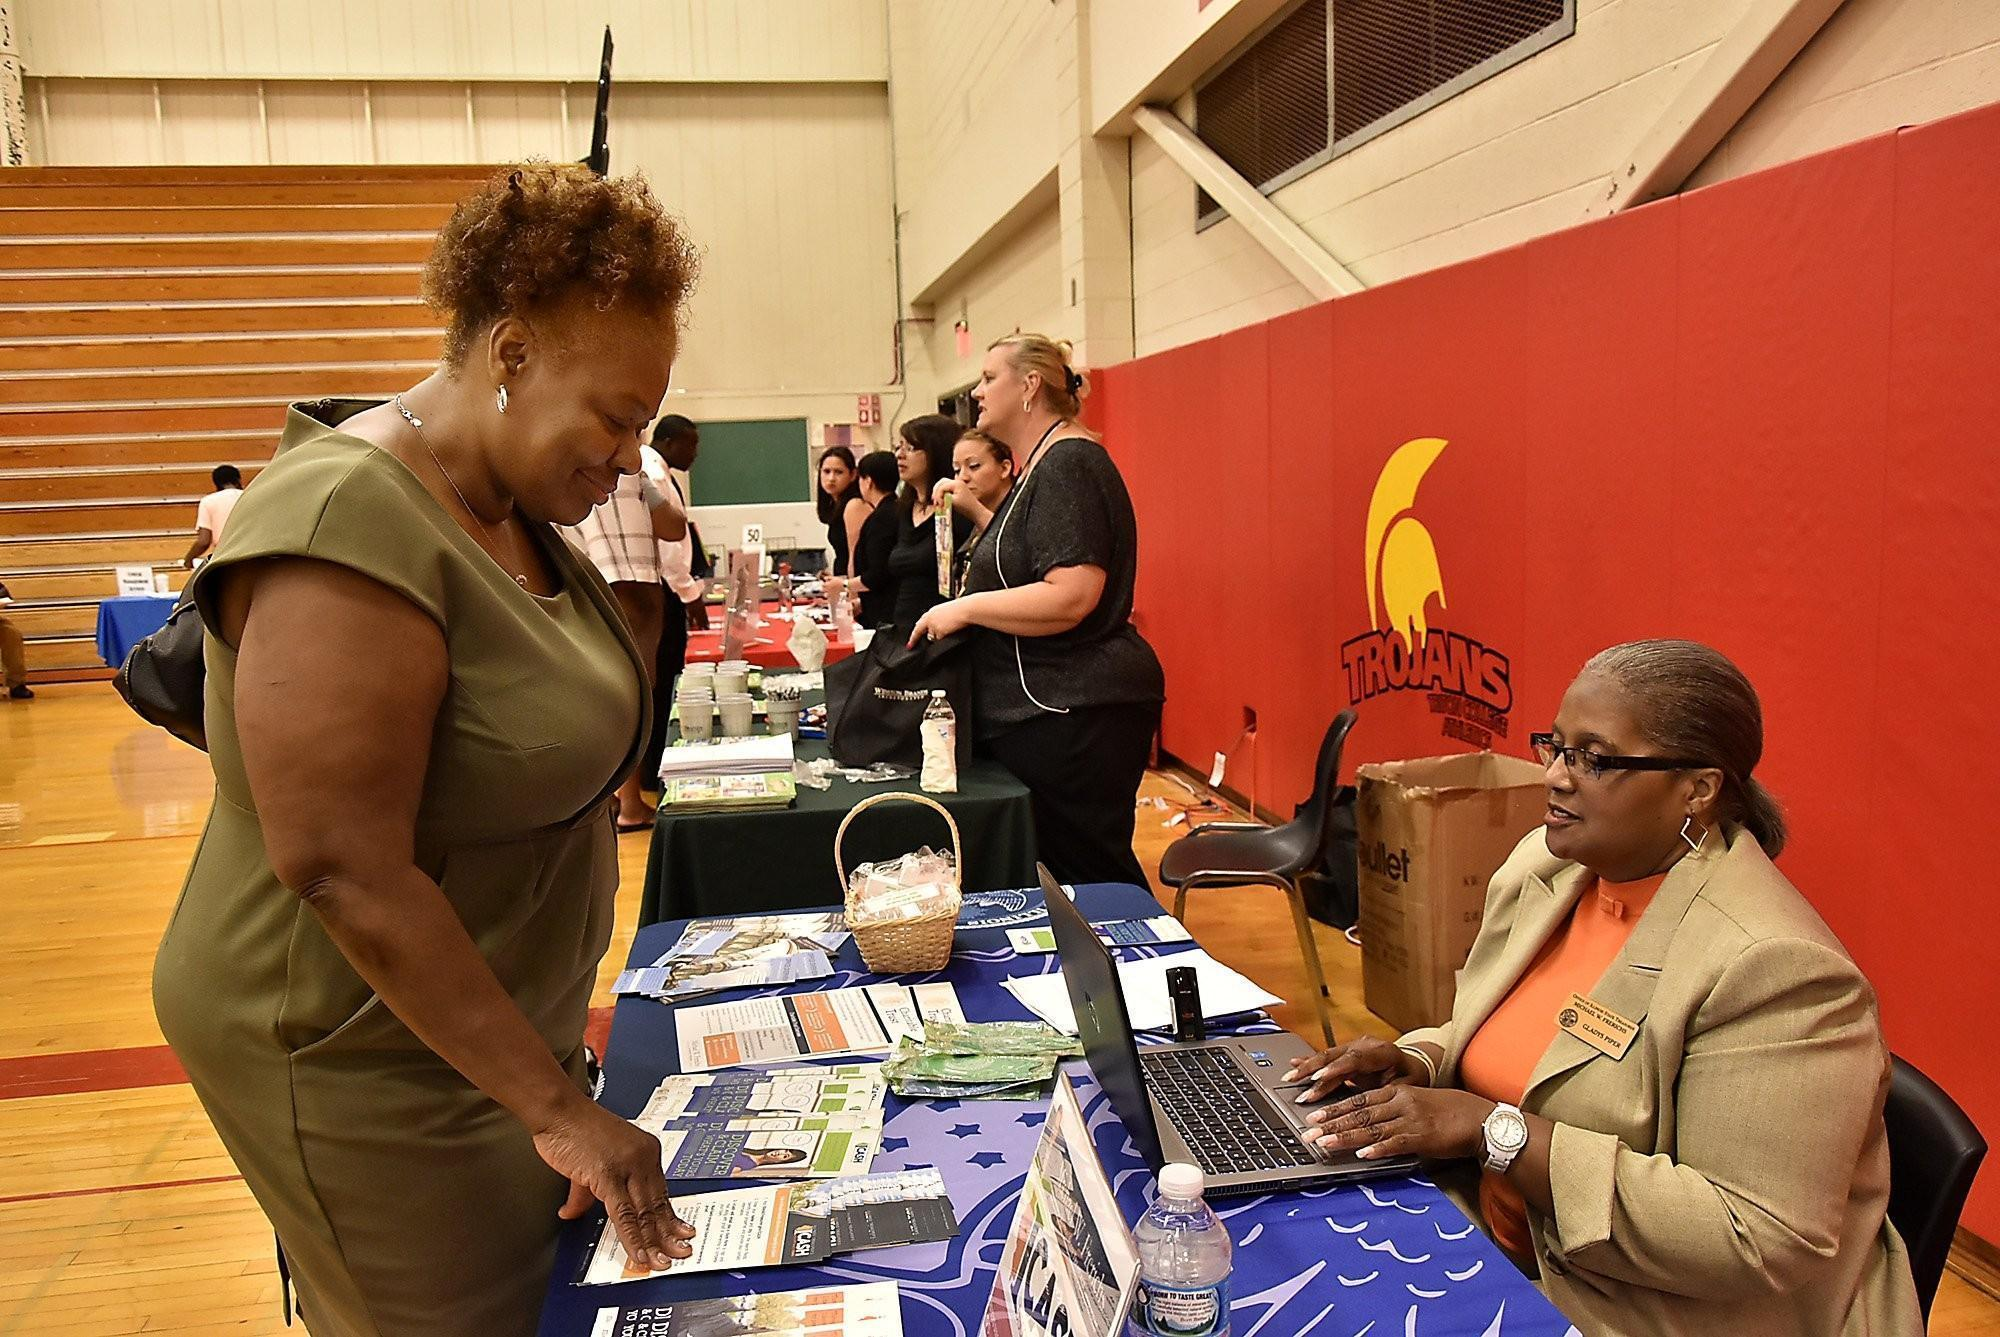 Embracing a 'second chance' at Triton job fair